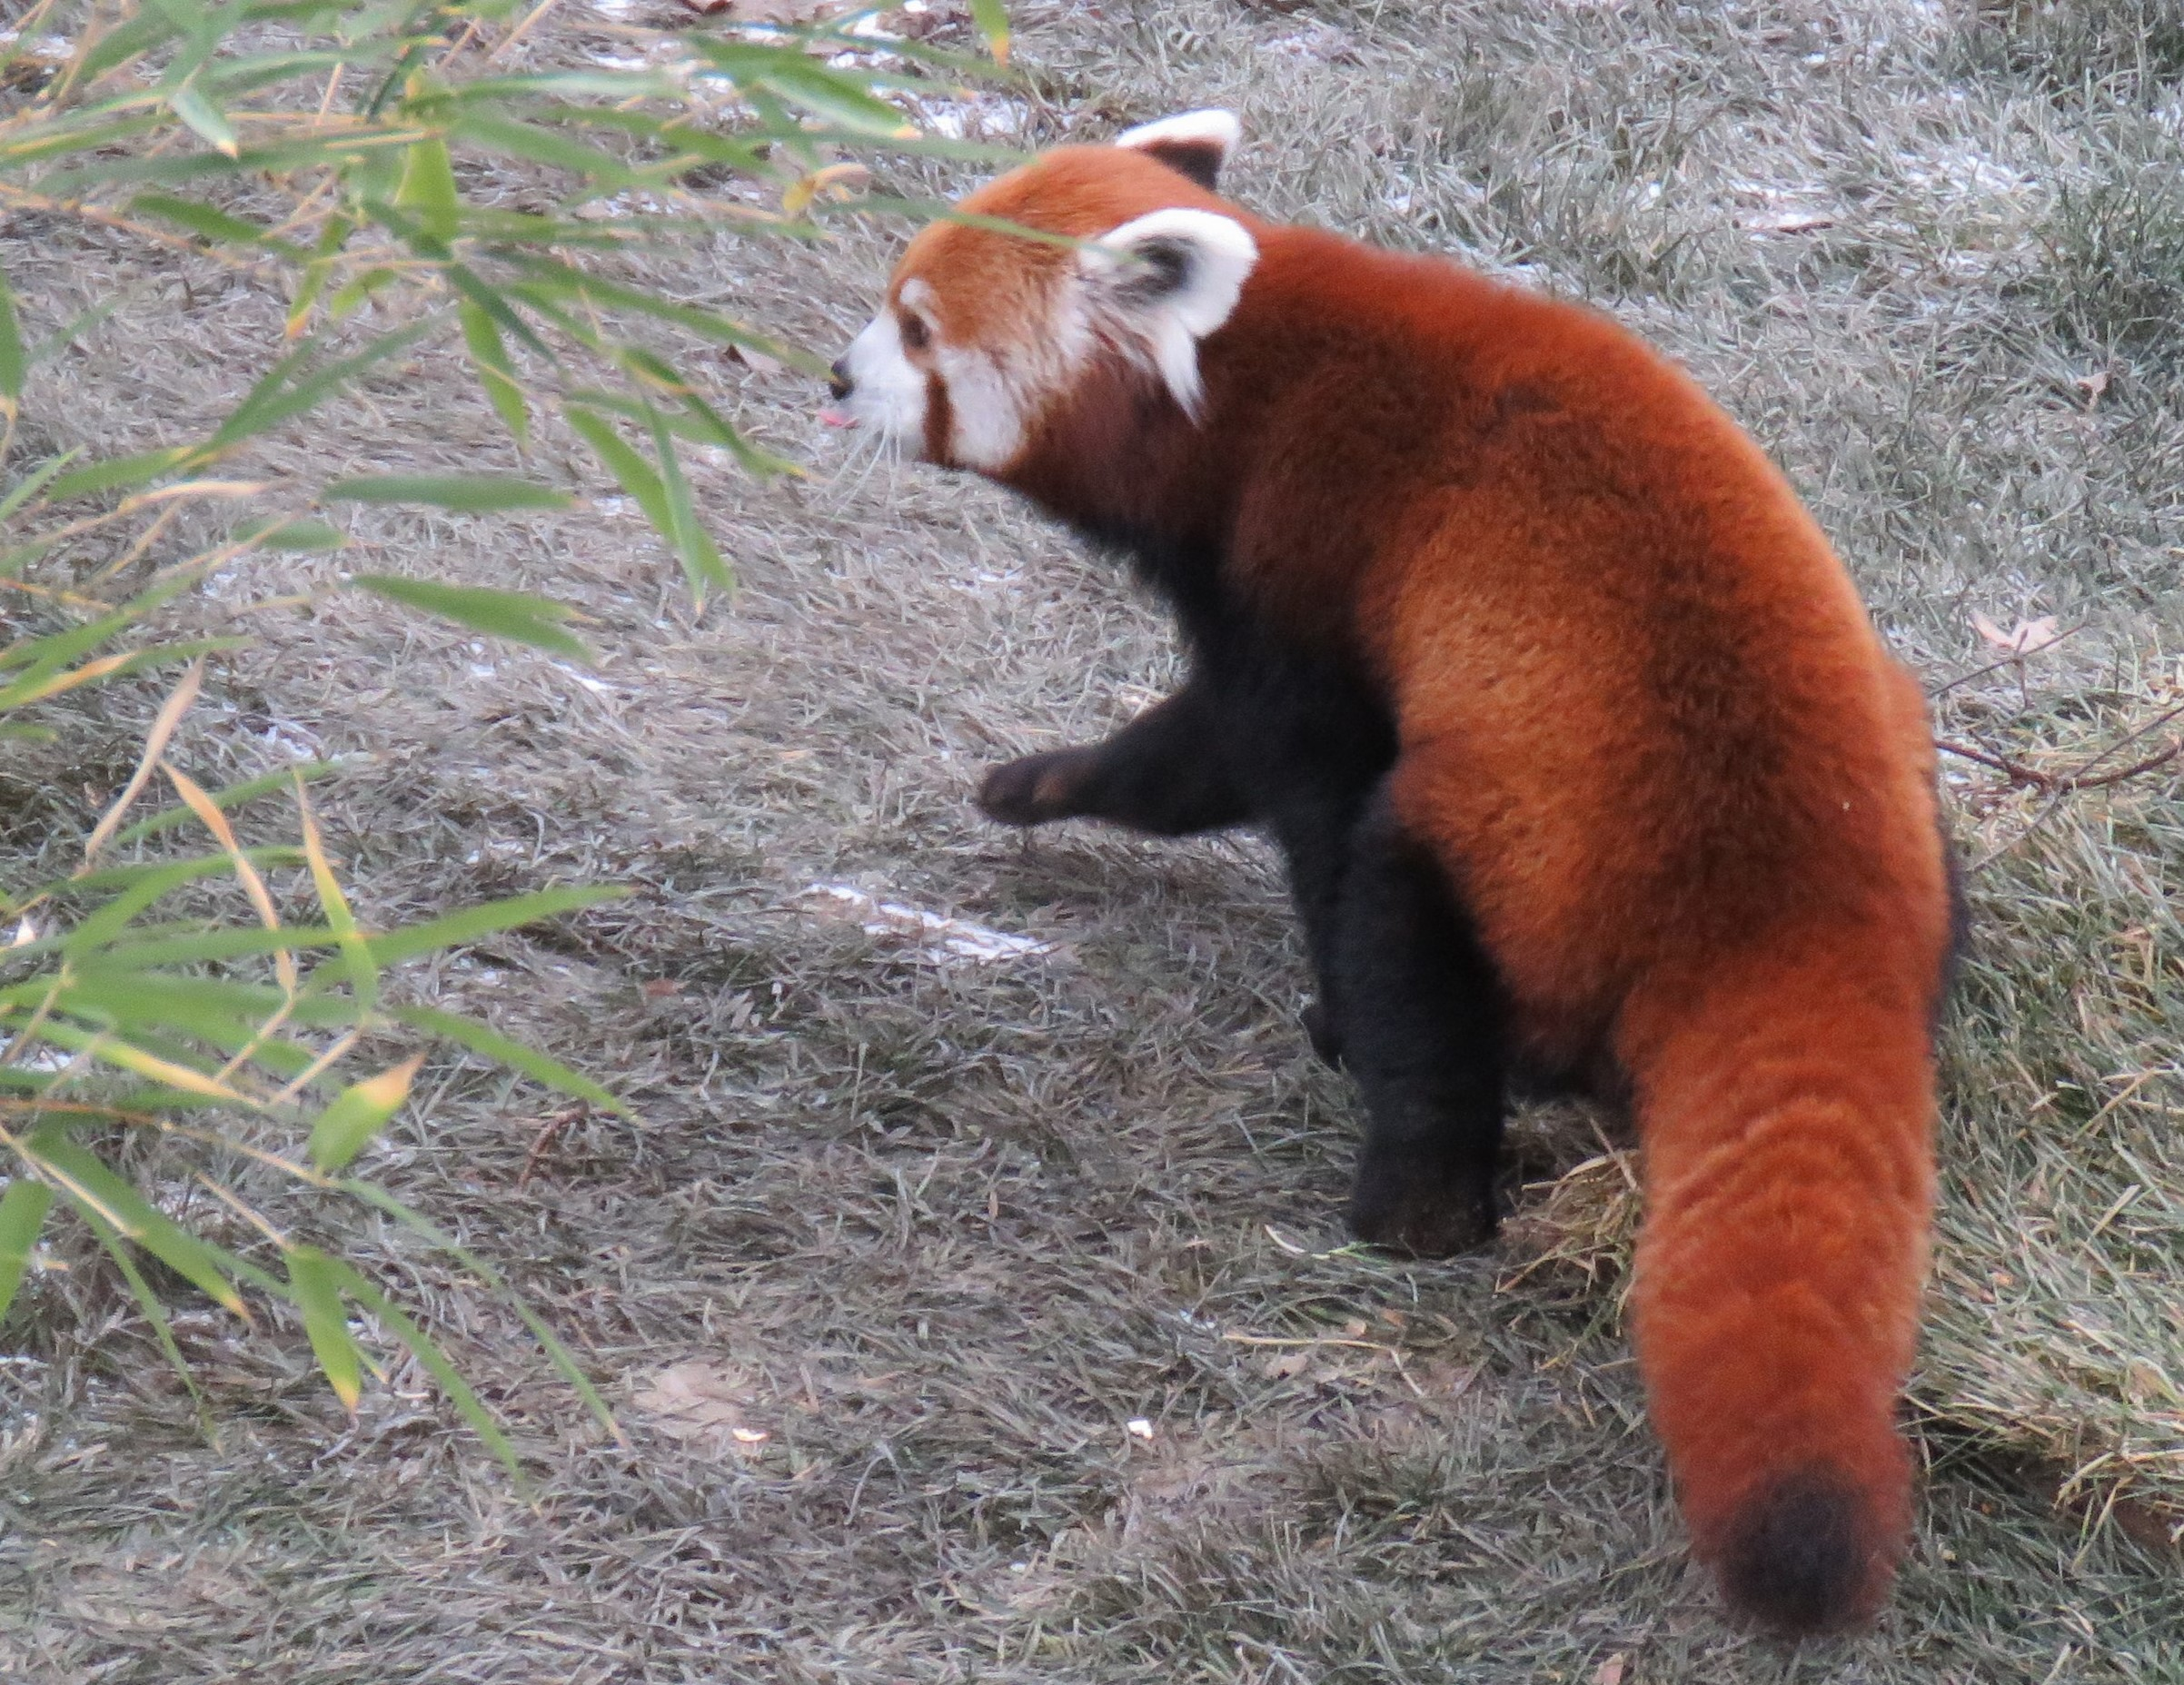 A red panda walking away